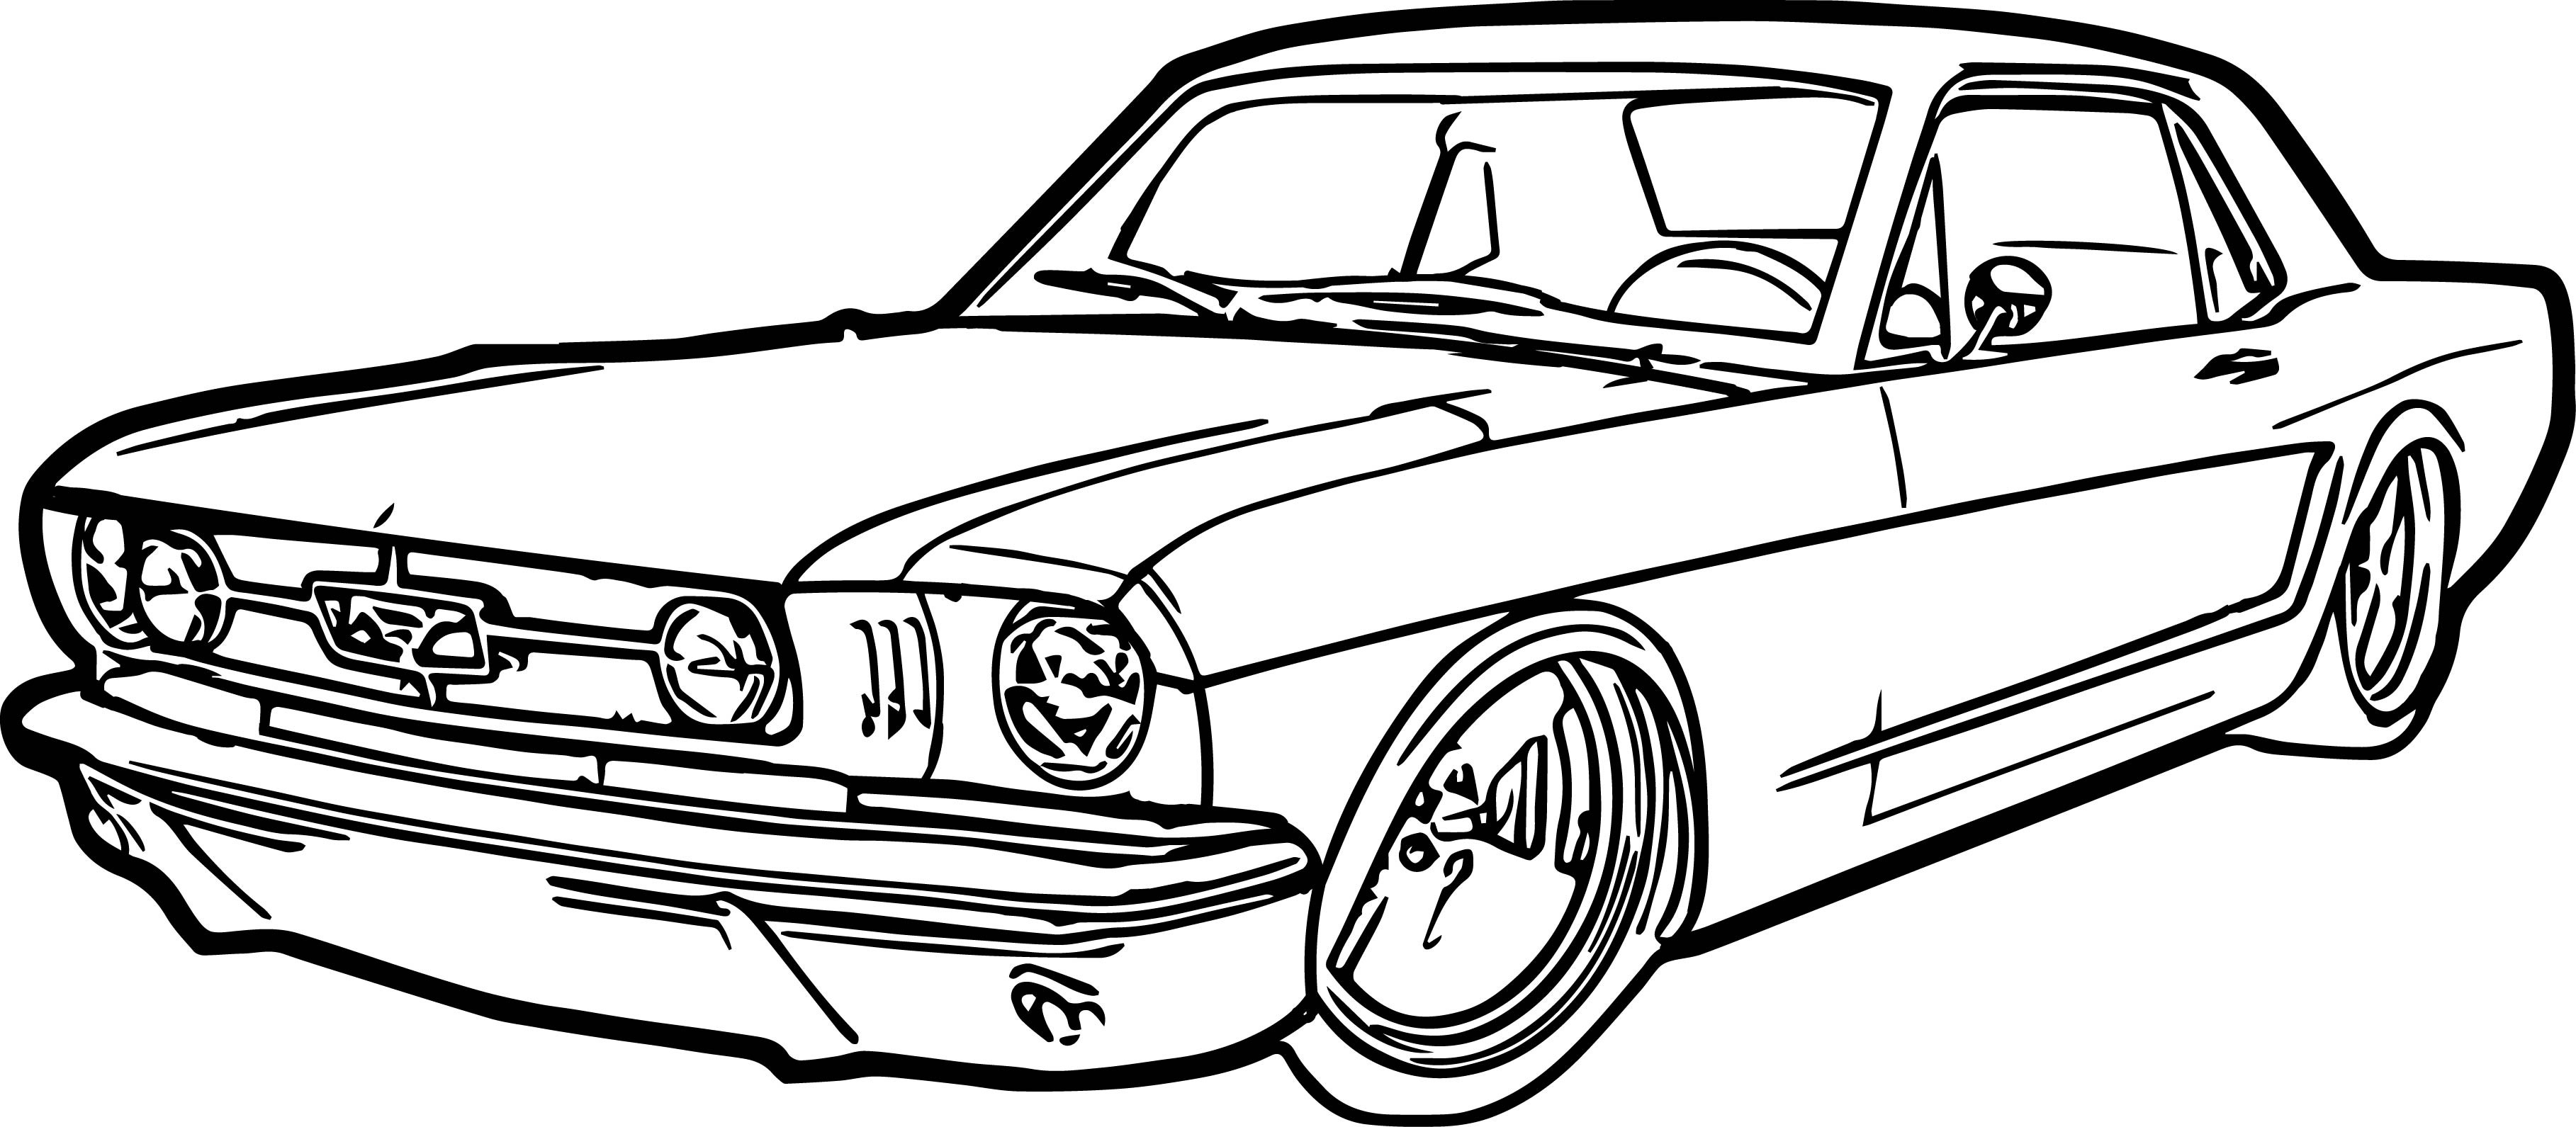 coloring pages race cars koenigsegg racing cars coloring page koenigsegg car race coloring cars pages